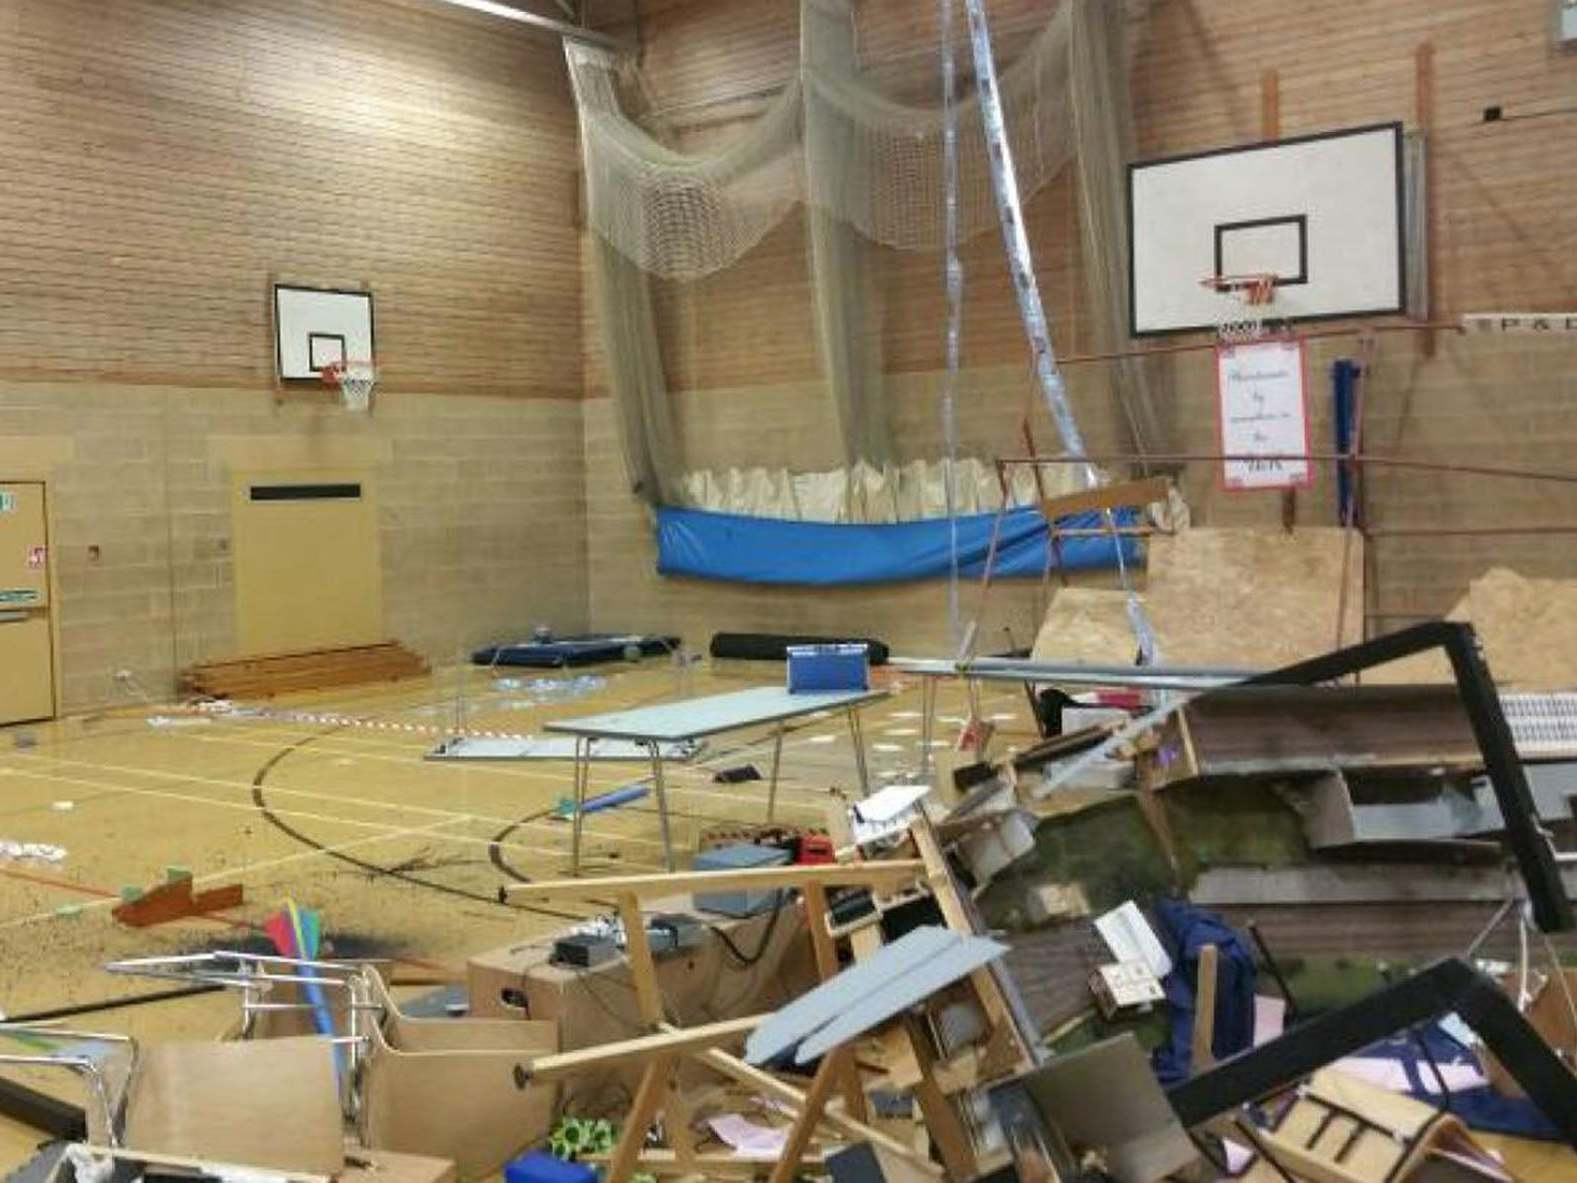 'Mindless wanton destruction': Schoolboys' parents to pay £1,500 after £30,000 model railway show trashed